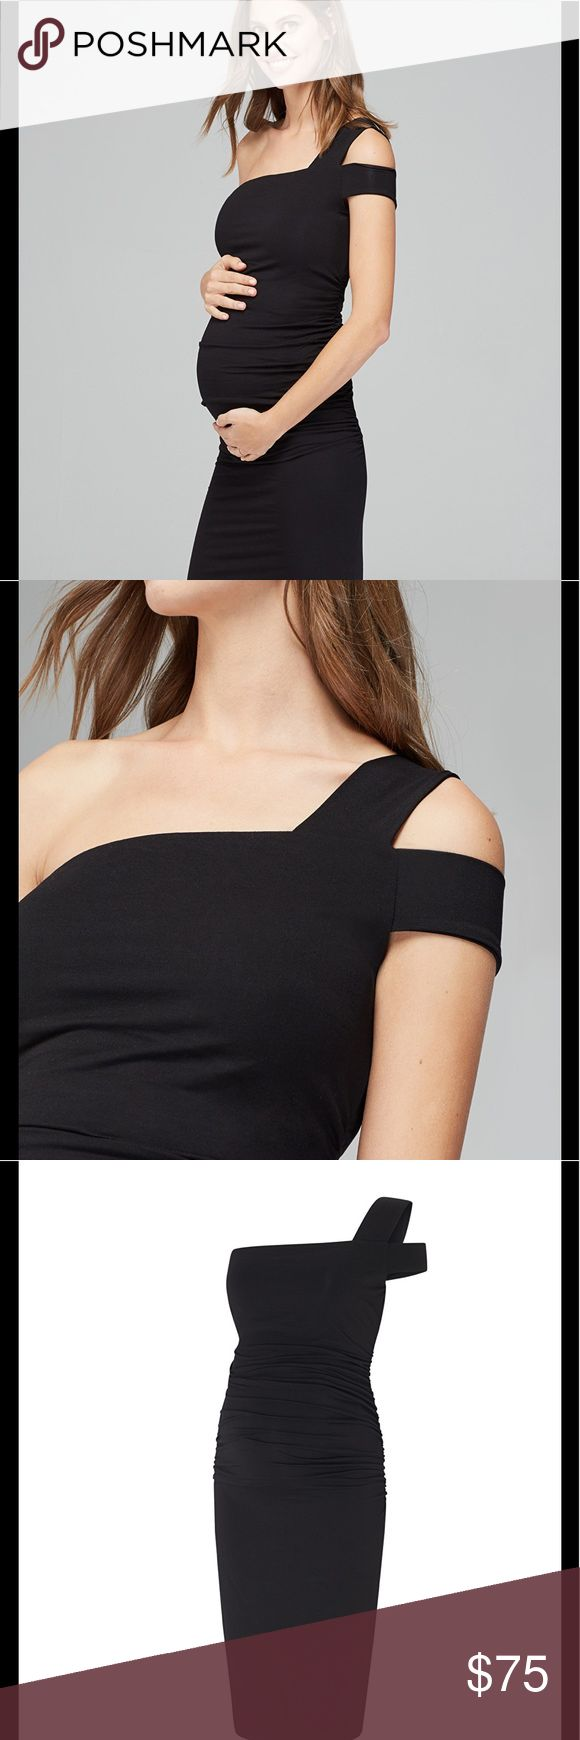 🤰Isabella Oliver black Brunswick Maternity Dress Effortless and chic, the Brunswick Maternity Dress is the perfect piece to see you through pregnancy. The graphic shoulder cut-out detail adds extra 'wow' factor to this classic LBD design. Date night? Done. This dress is still available full price. Grab a deal! IO size 3 which is about an 8 or medium.  Worn once.   Cut out shoulder detailing Ruching at the sides to ensure a flattering fit Crafted in soft premium jersey One shoulder design…